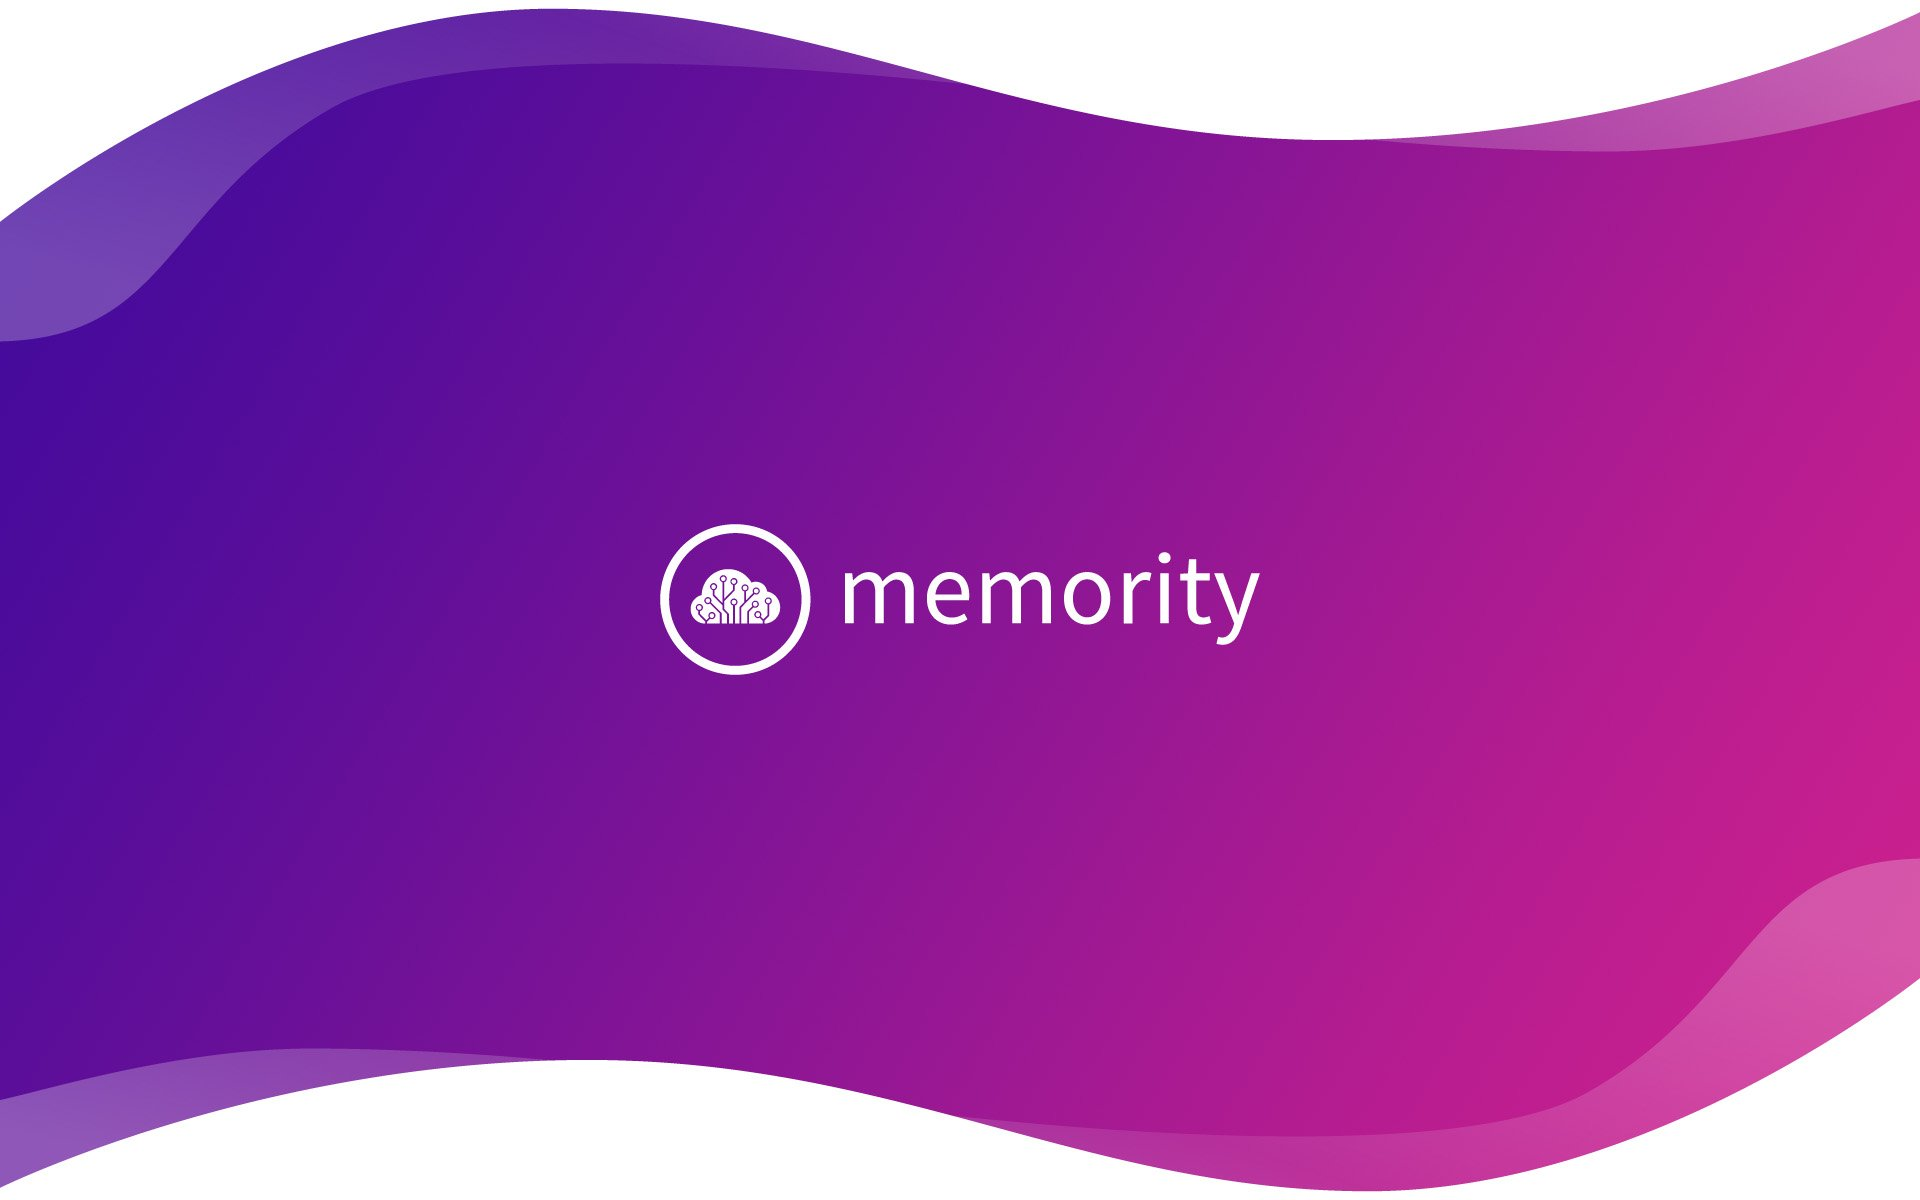 Memority.io Announces ICO Pre-Sale On The Heels Of Successful Release Of Revolutionary Ultra-Secure Data Storage Platform Built On The Blockchain